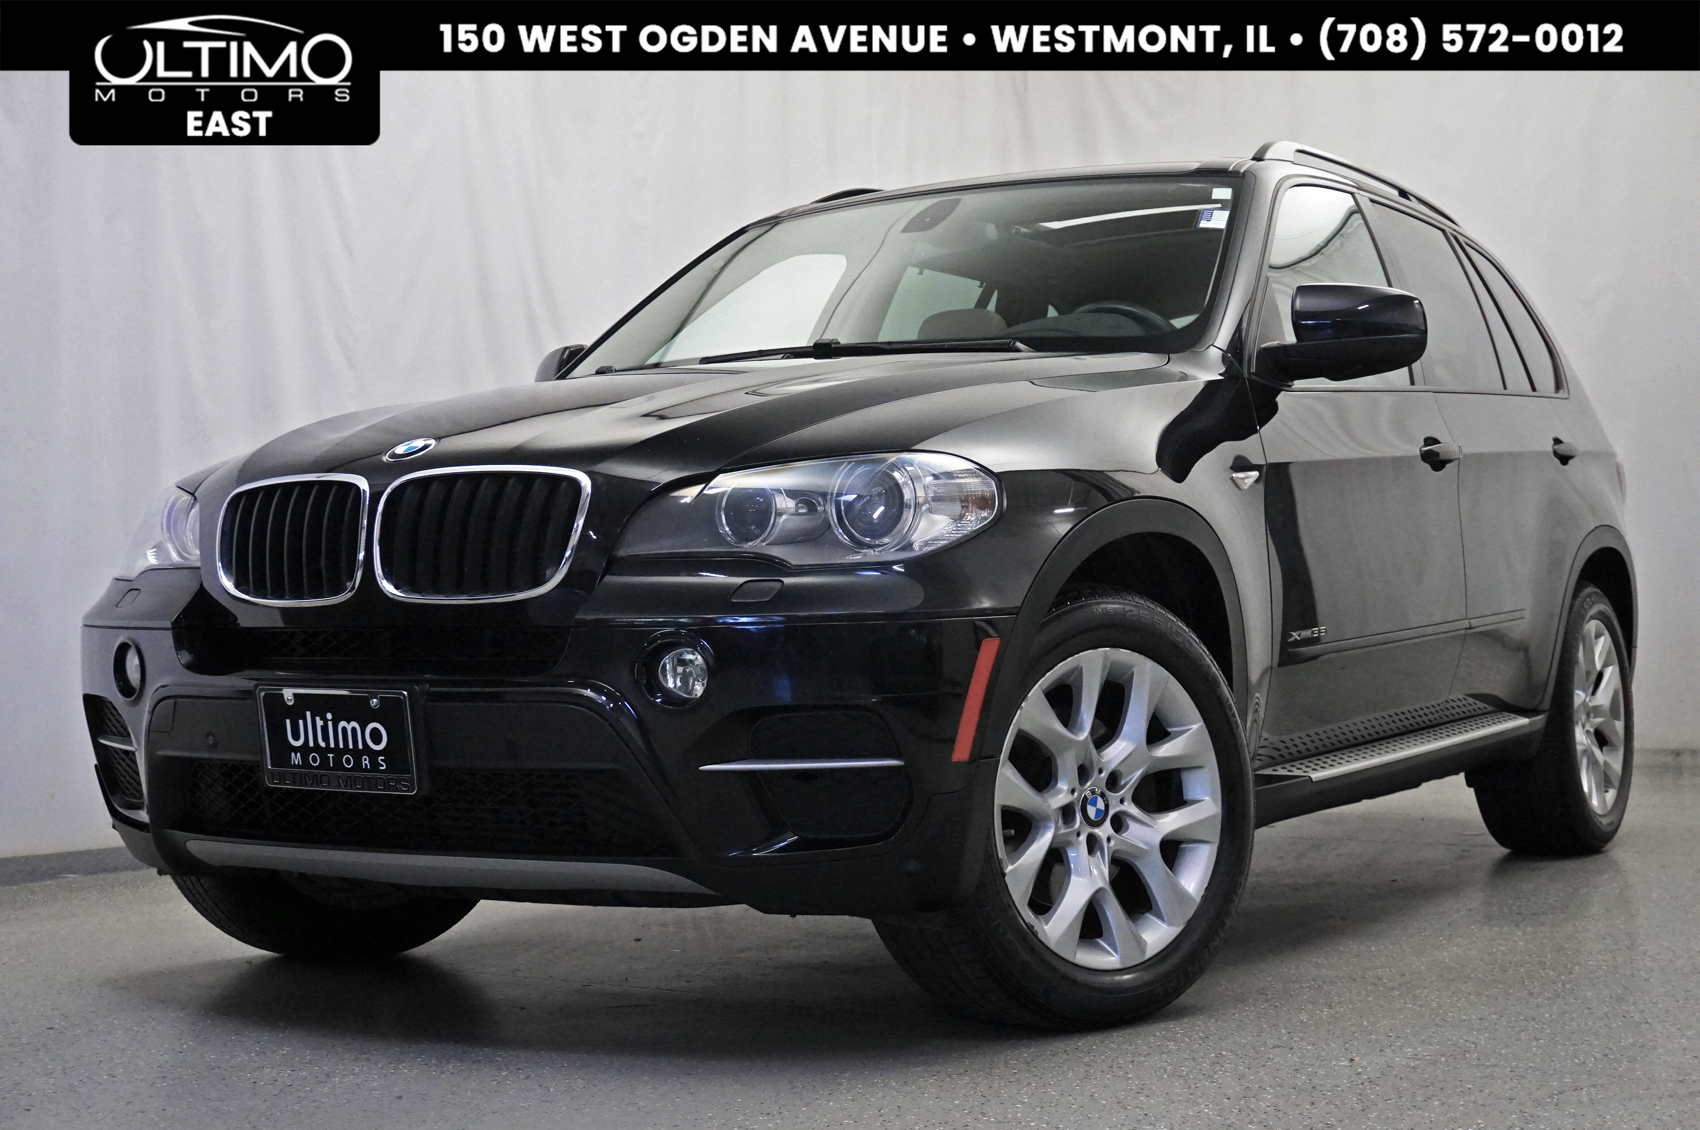 Pre-Owned 2013 BMW X5 xDrive35i Third Row Seat, Cold Weather Pkg,  Convenience